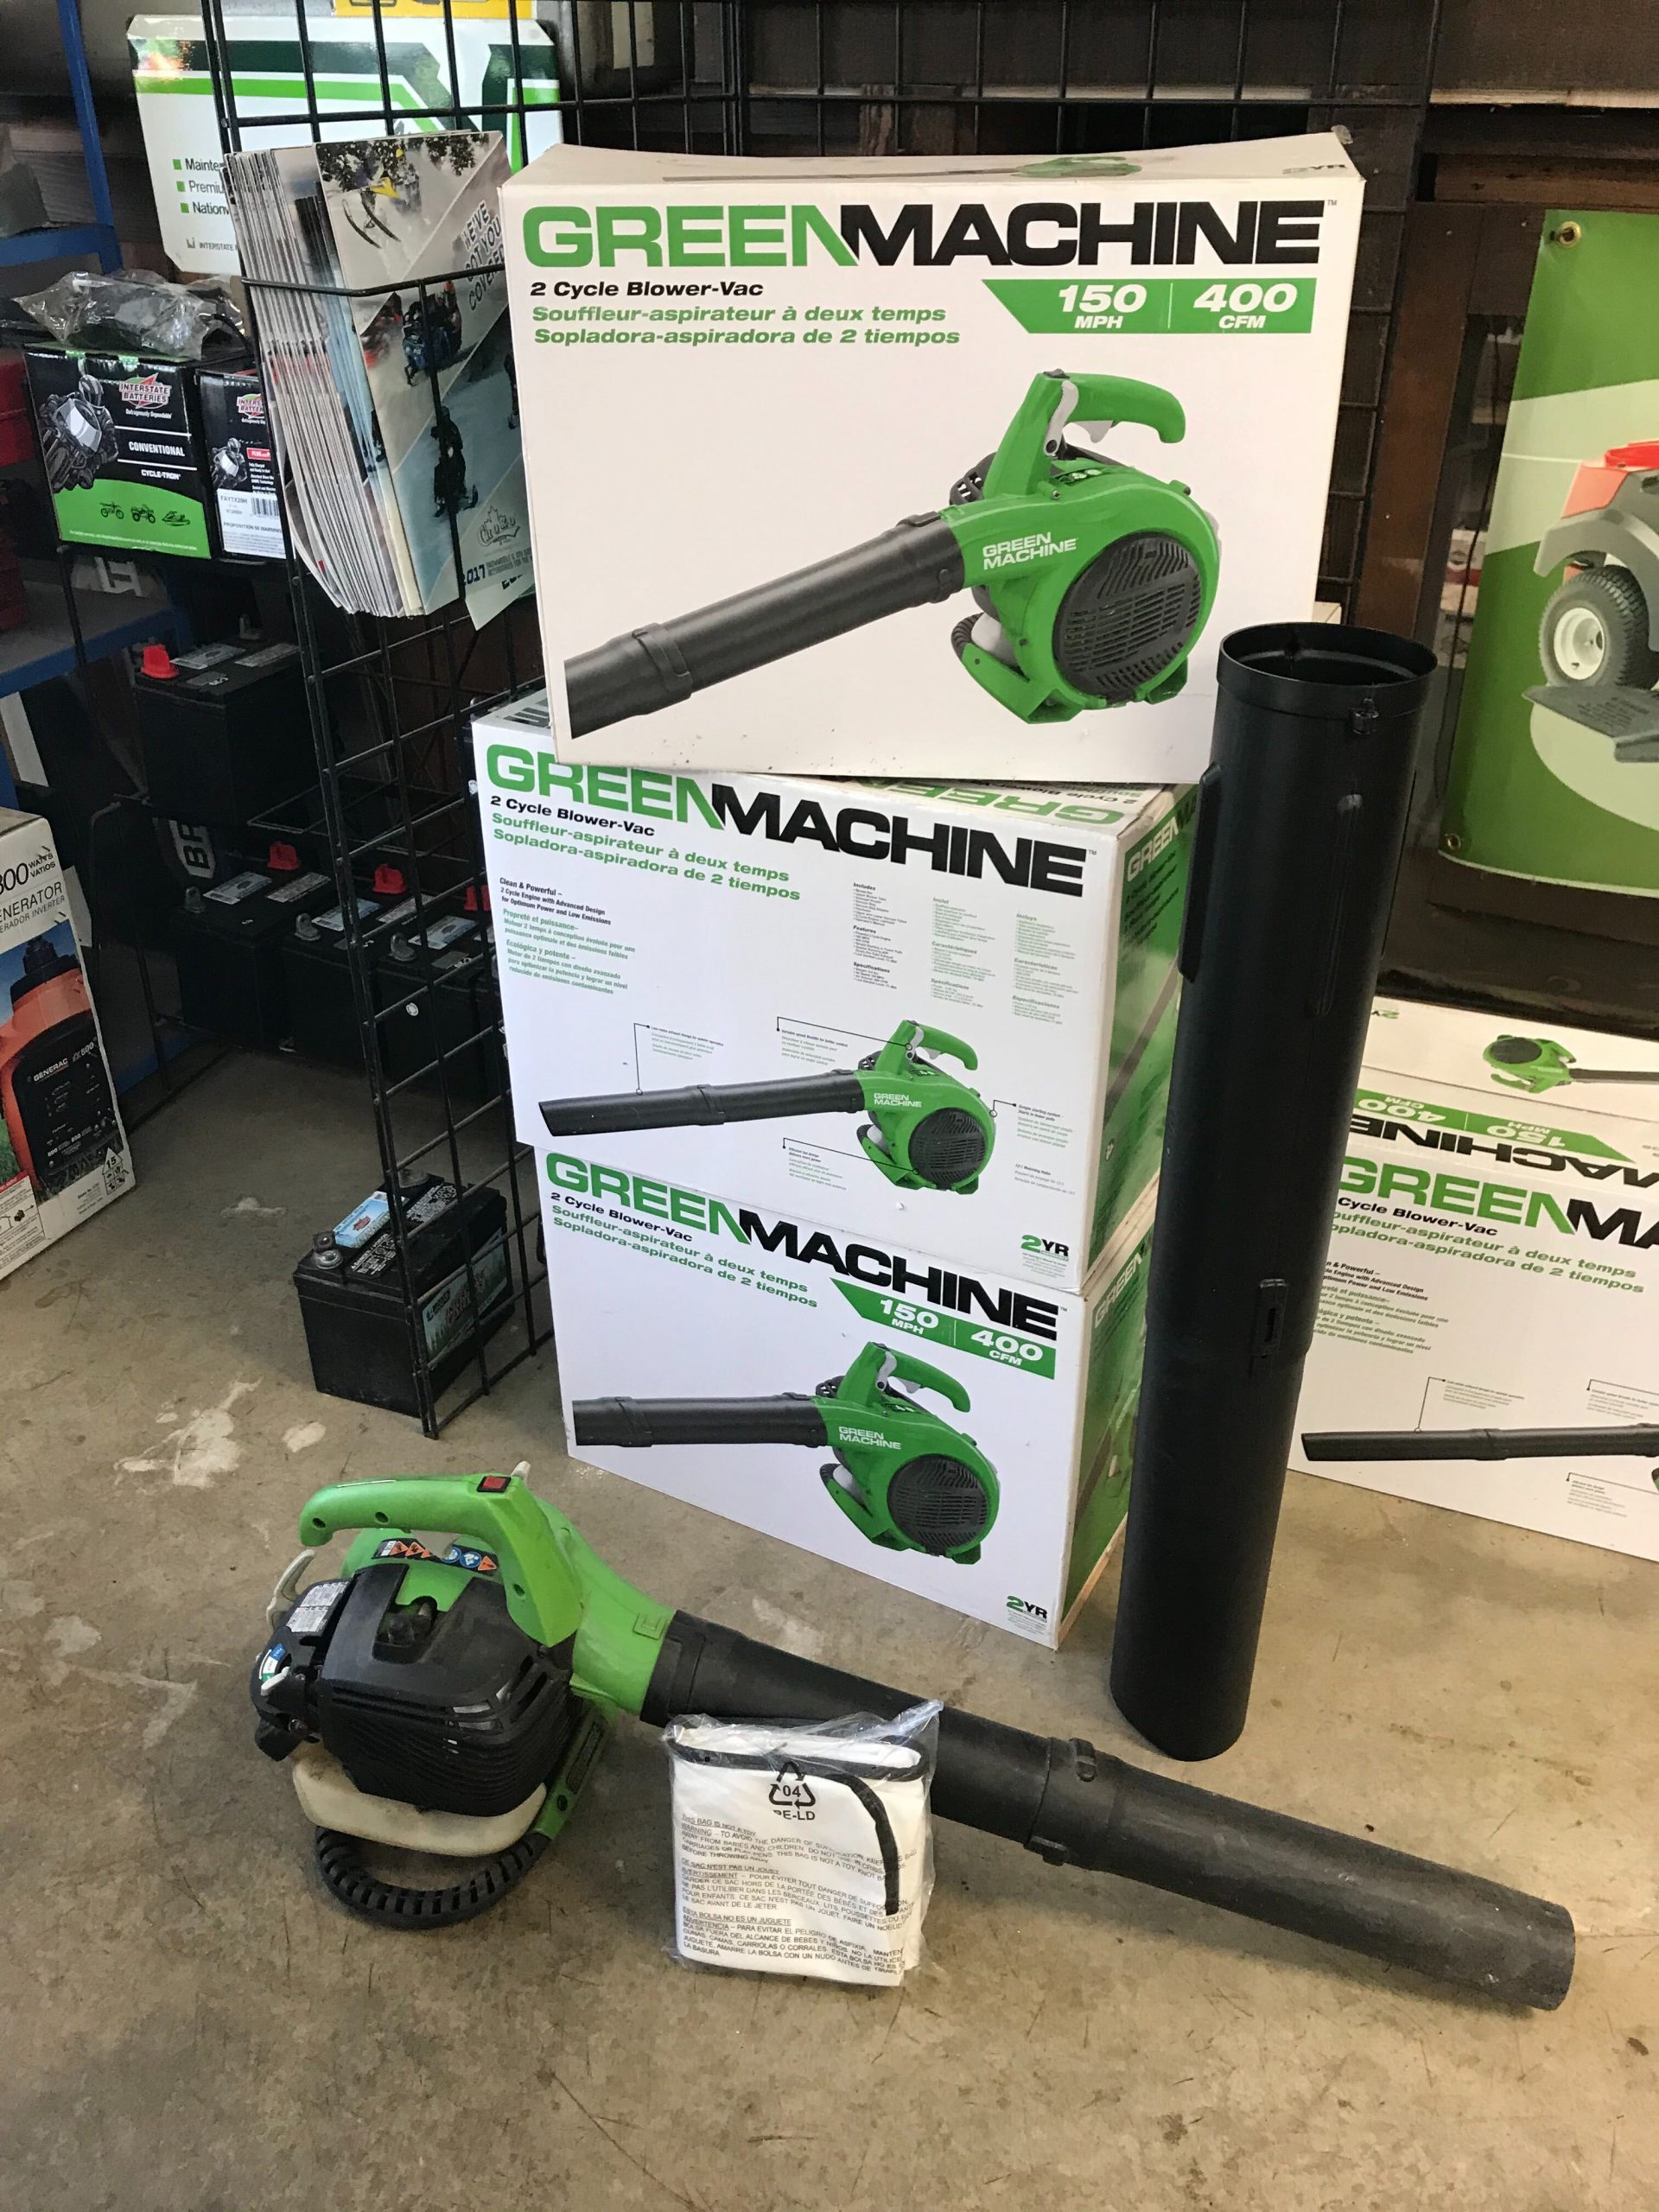 some green machine leaf blowers at the store